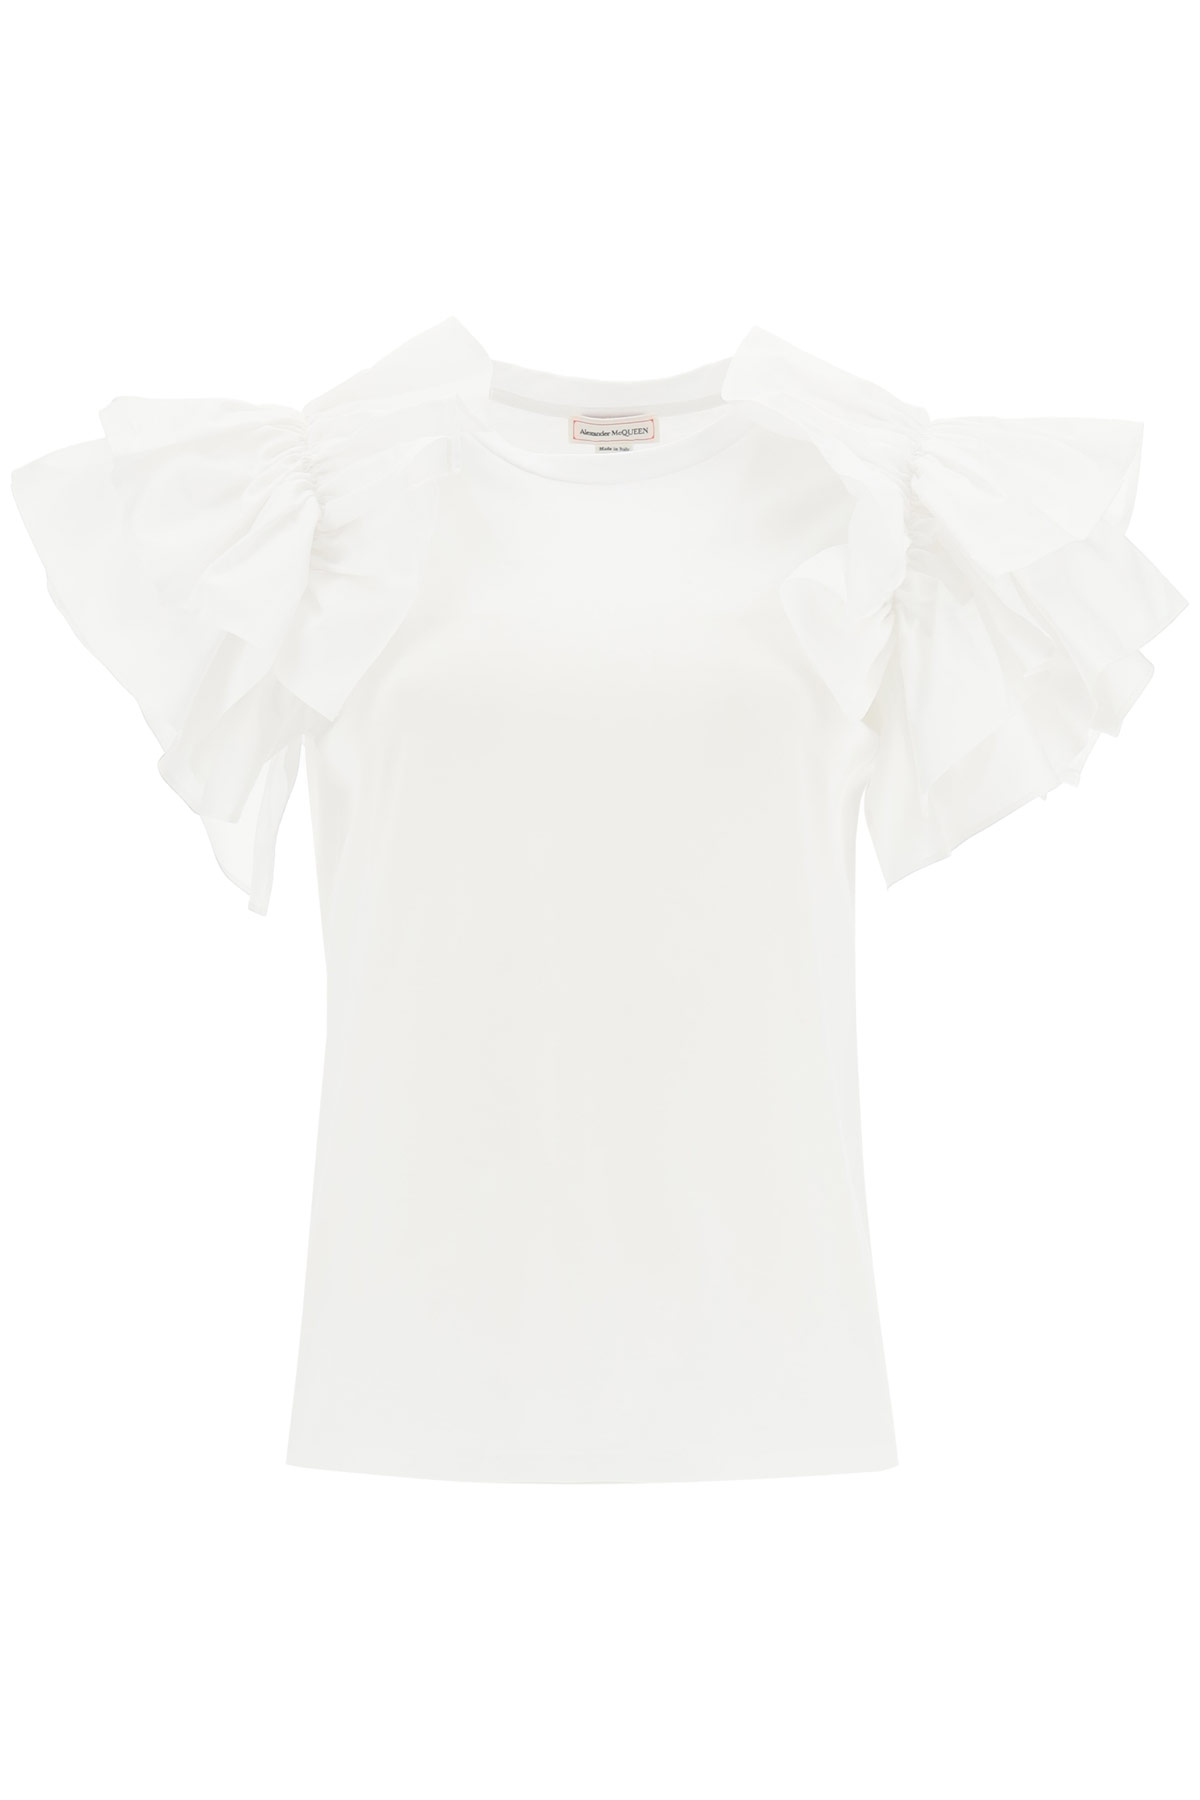 ALEXANDER MCQUEEN RUFFLED T-SHIRT 38 White Cotton